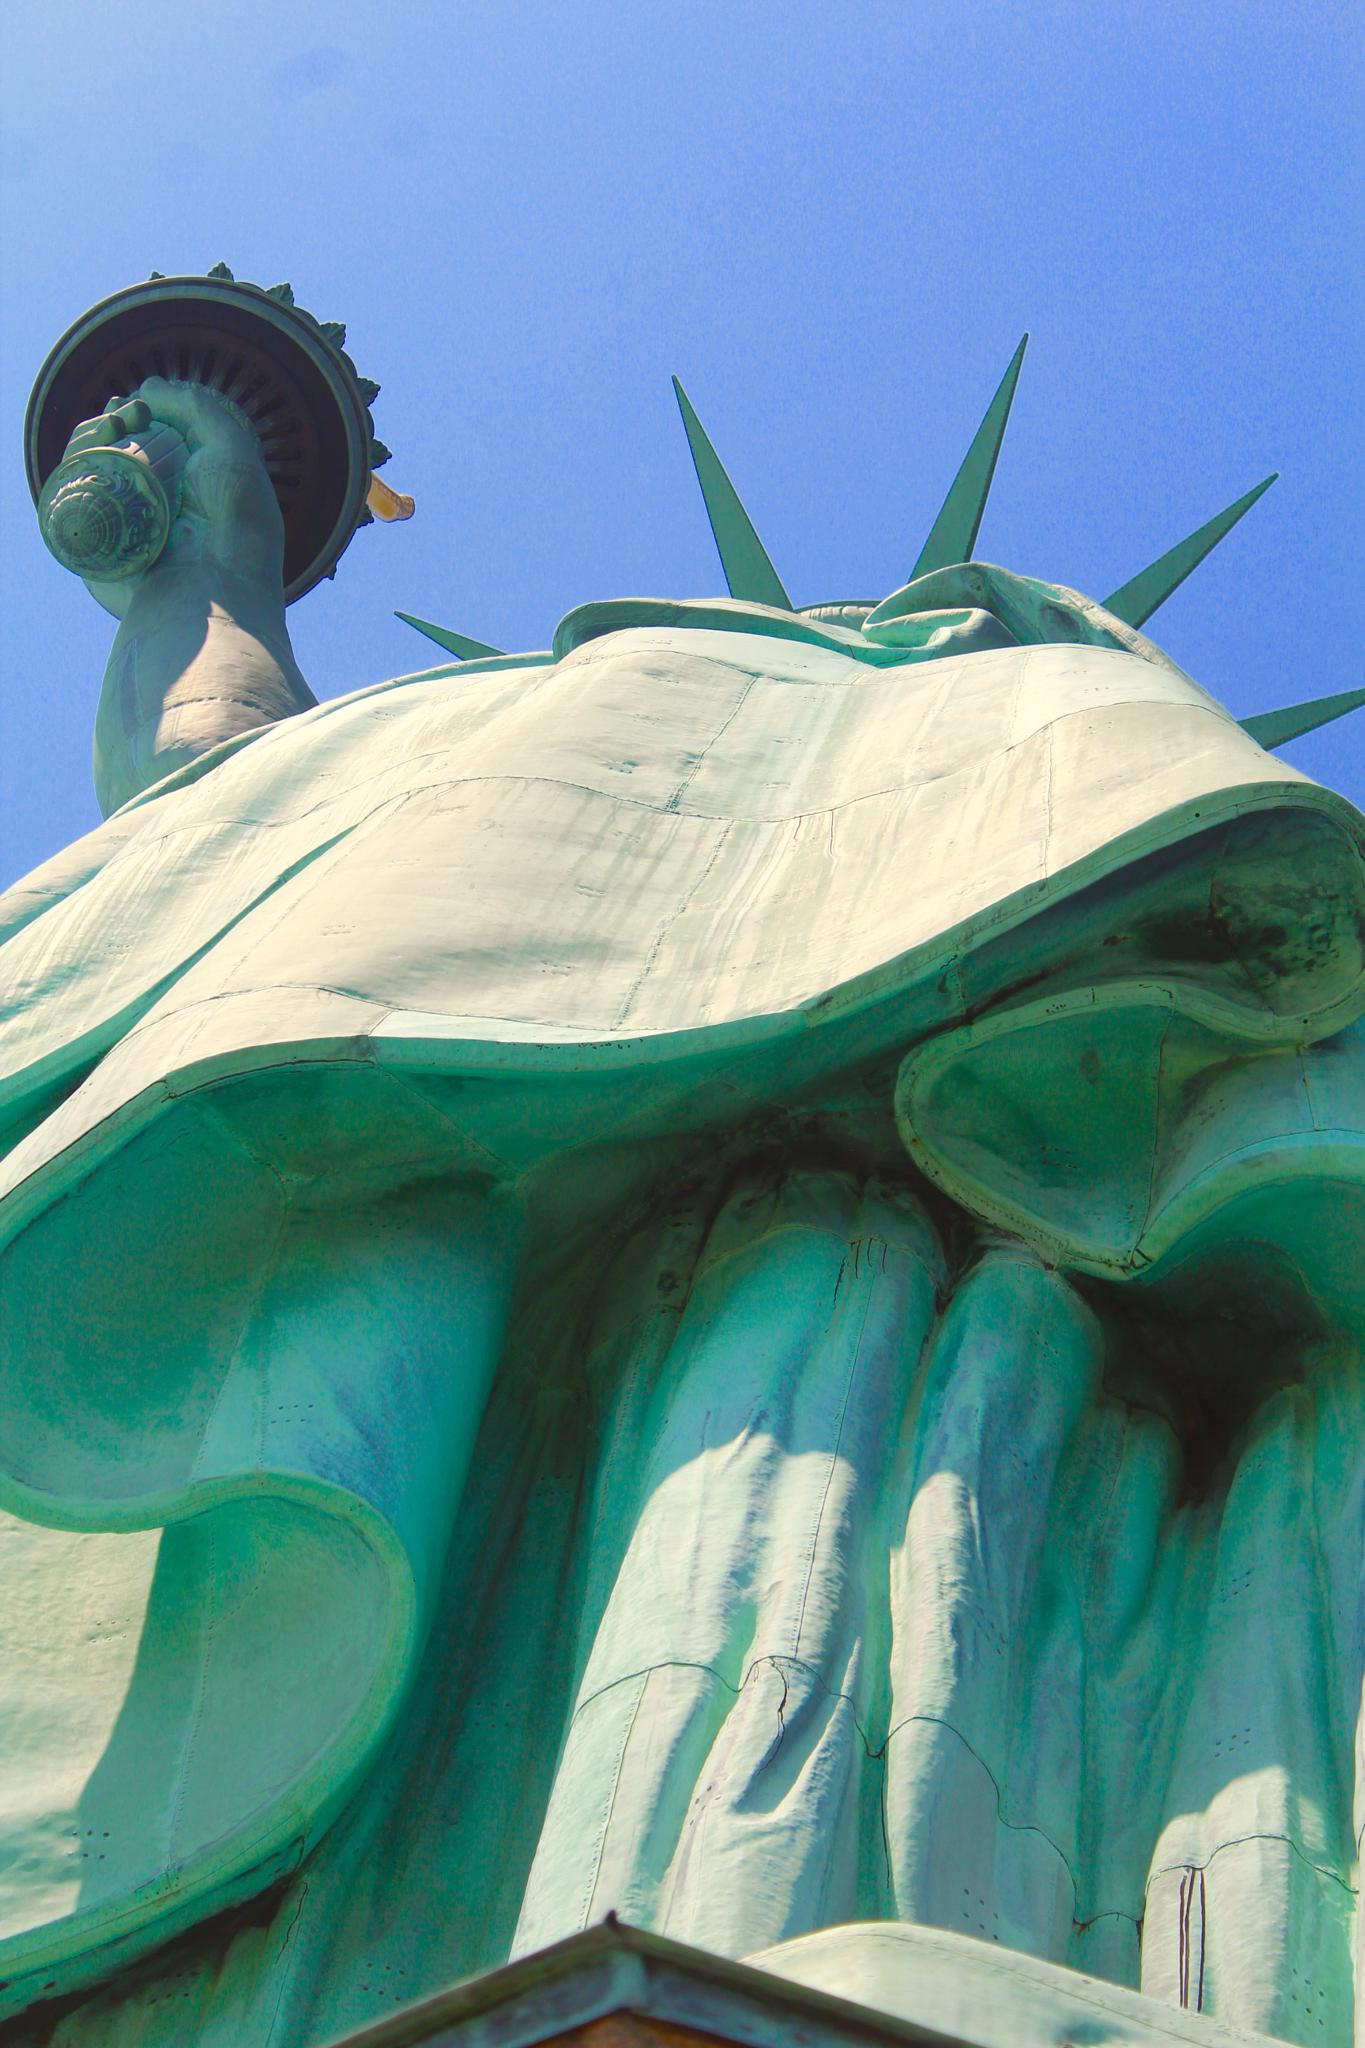 Statue of Liberty by Snickandmephotography